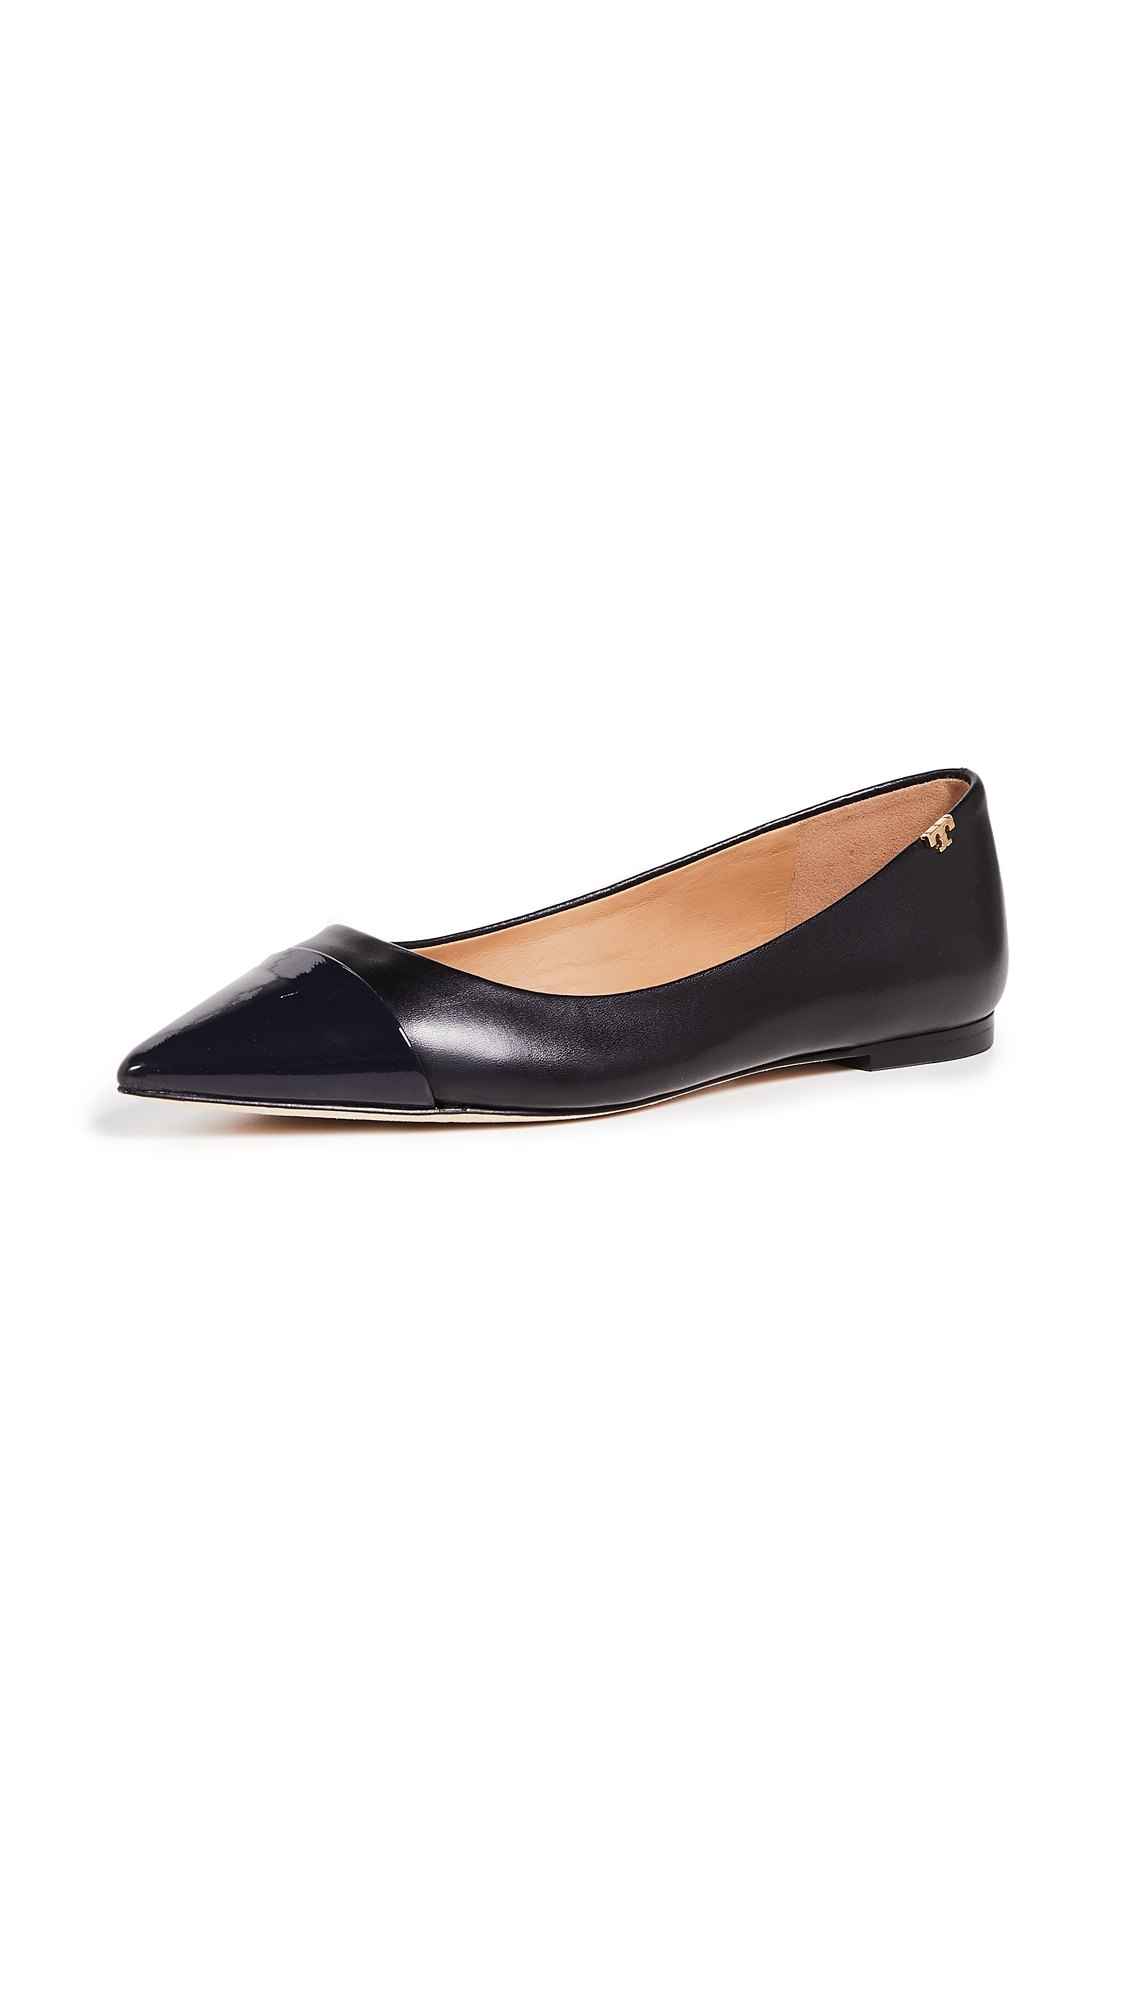 Tory Burch Penelope Cap Toe Flats - Perfect Black/Perfect Navy